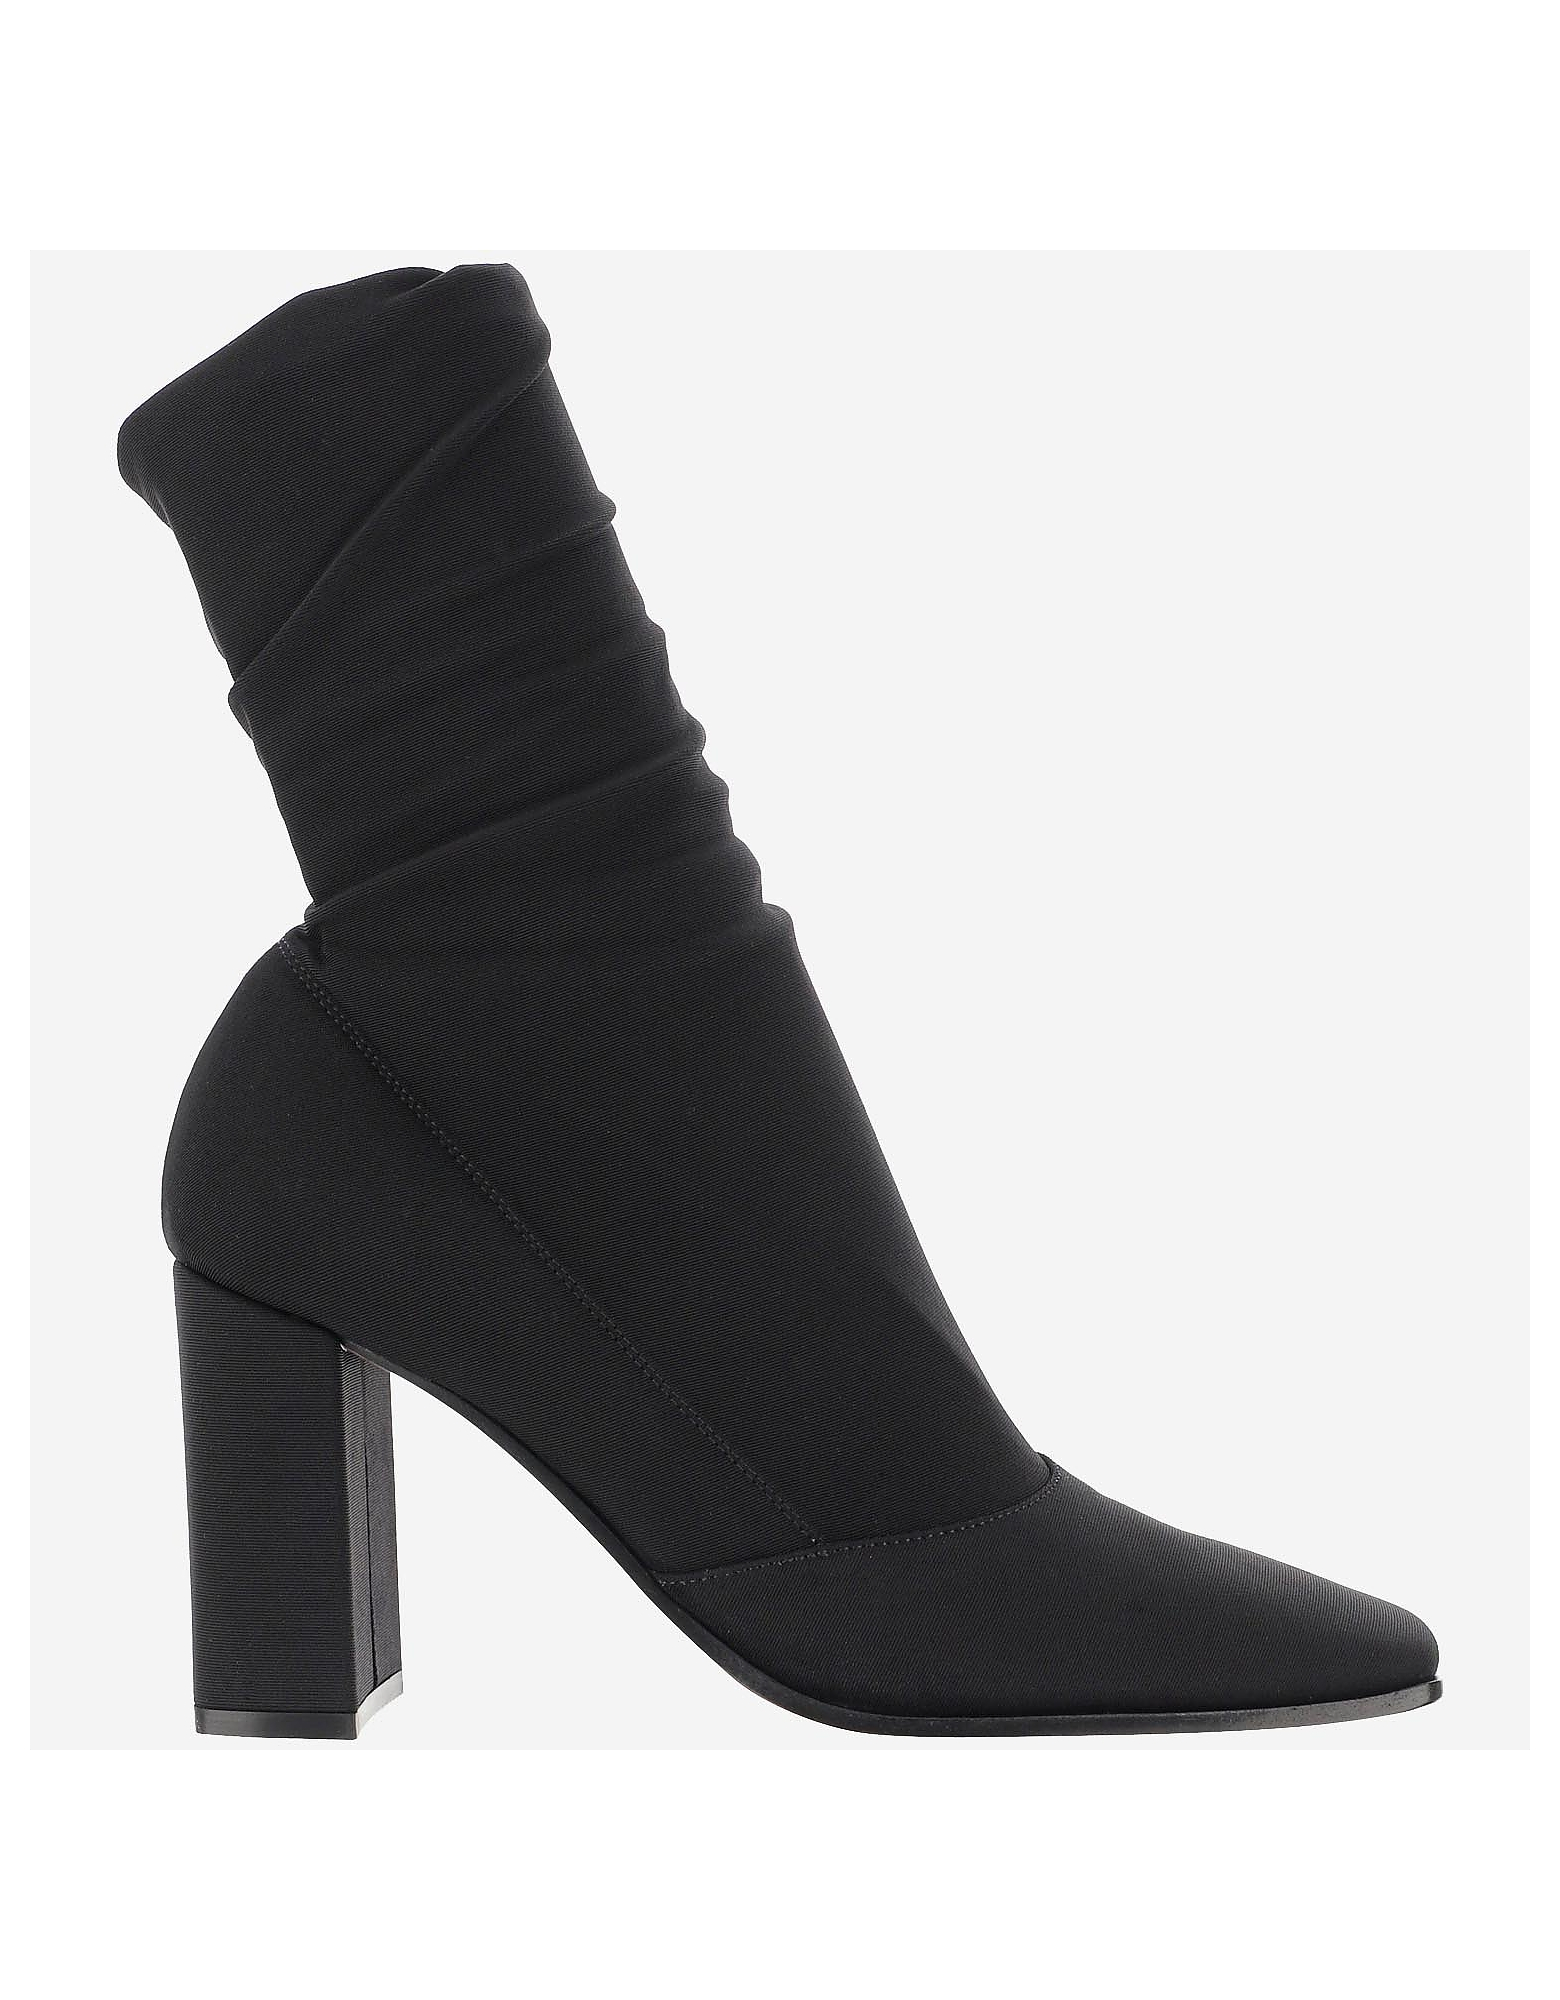 Gianvito Rossi Designer Shoes, Black Stretch Fabric Ankle-Boots